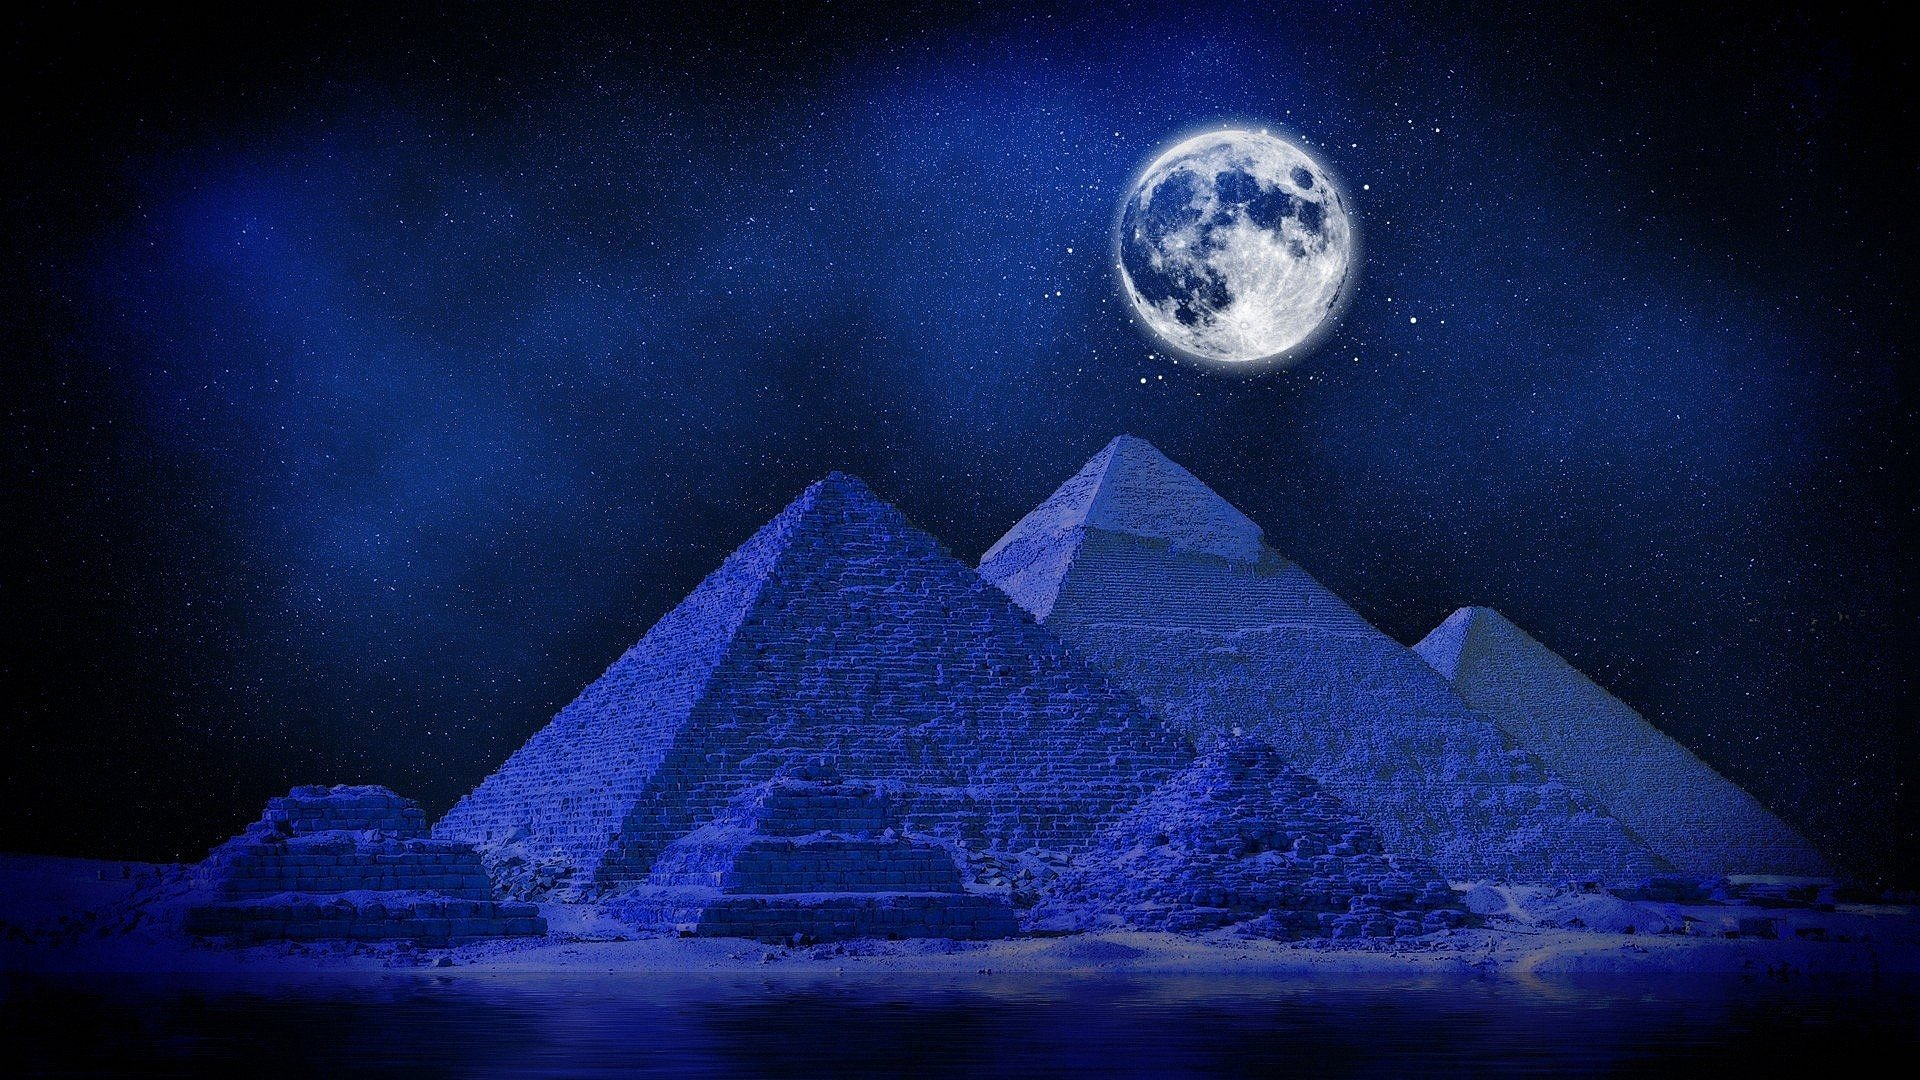 40 Pyramid Hd Wallpapers Background Images Wallpaper Abyss